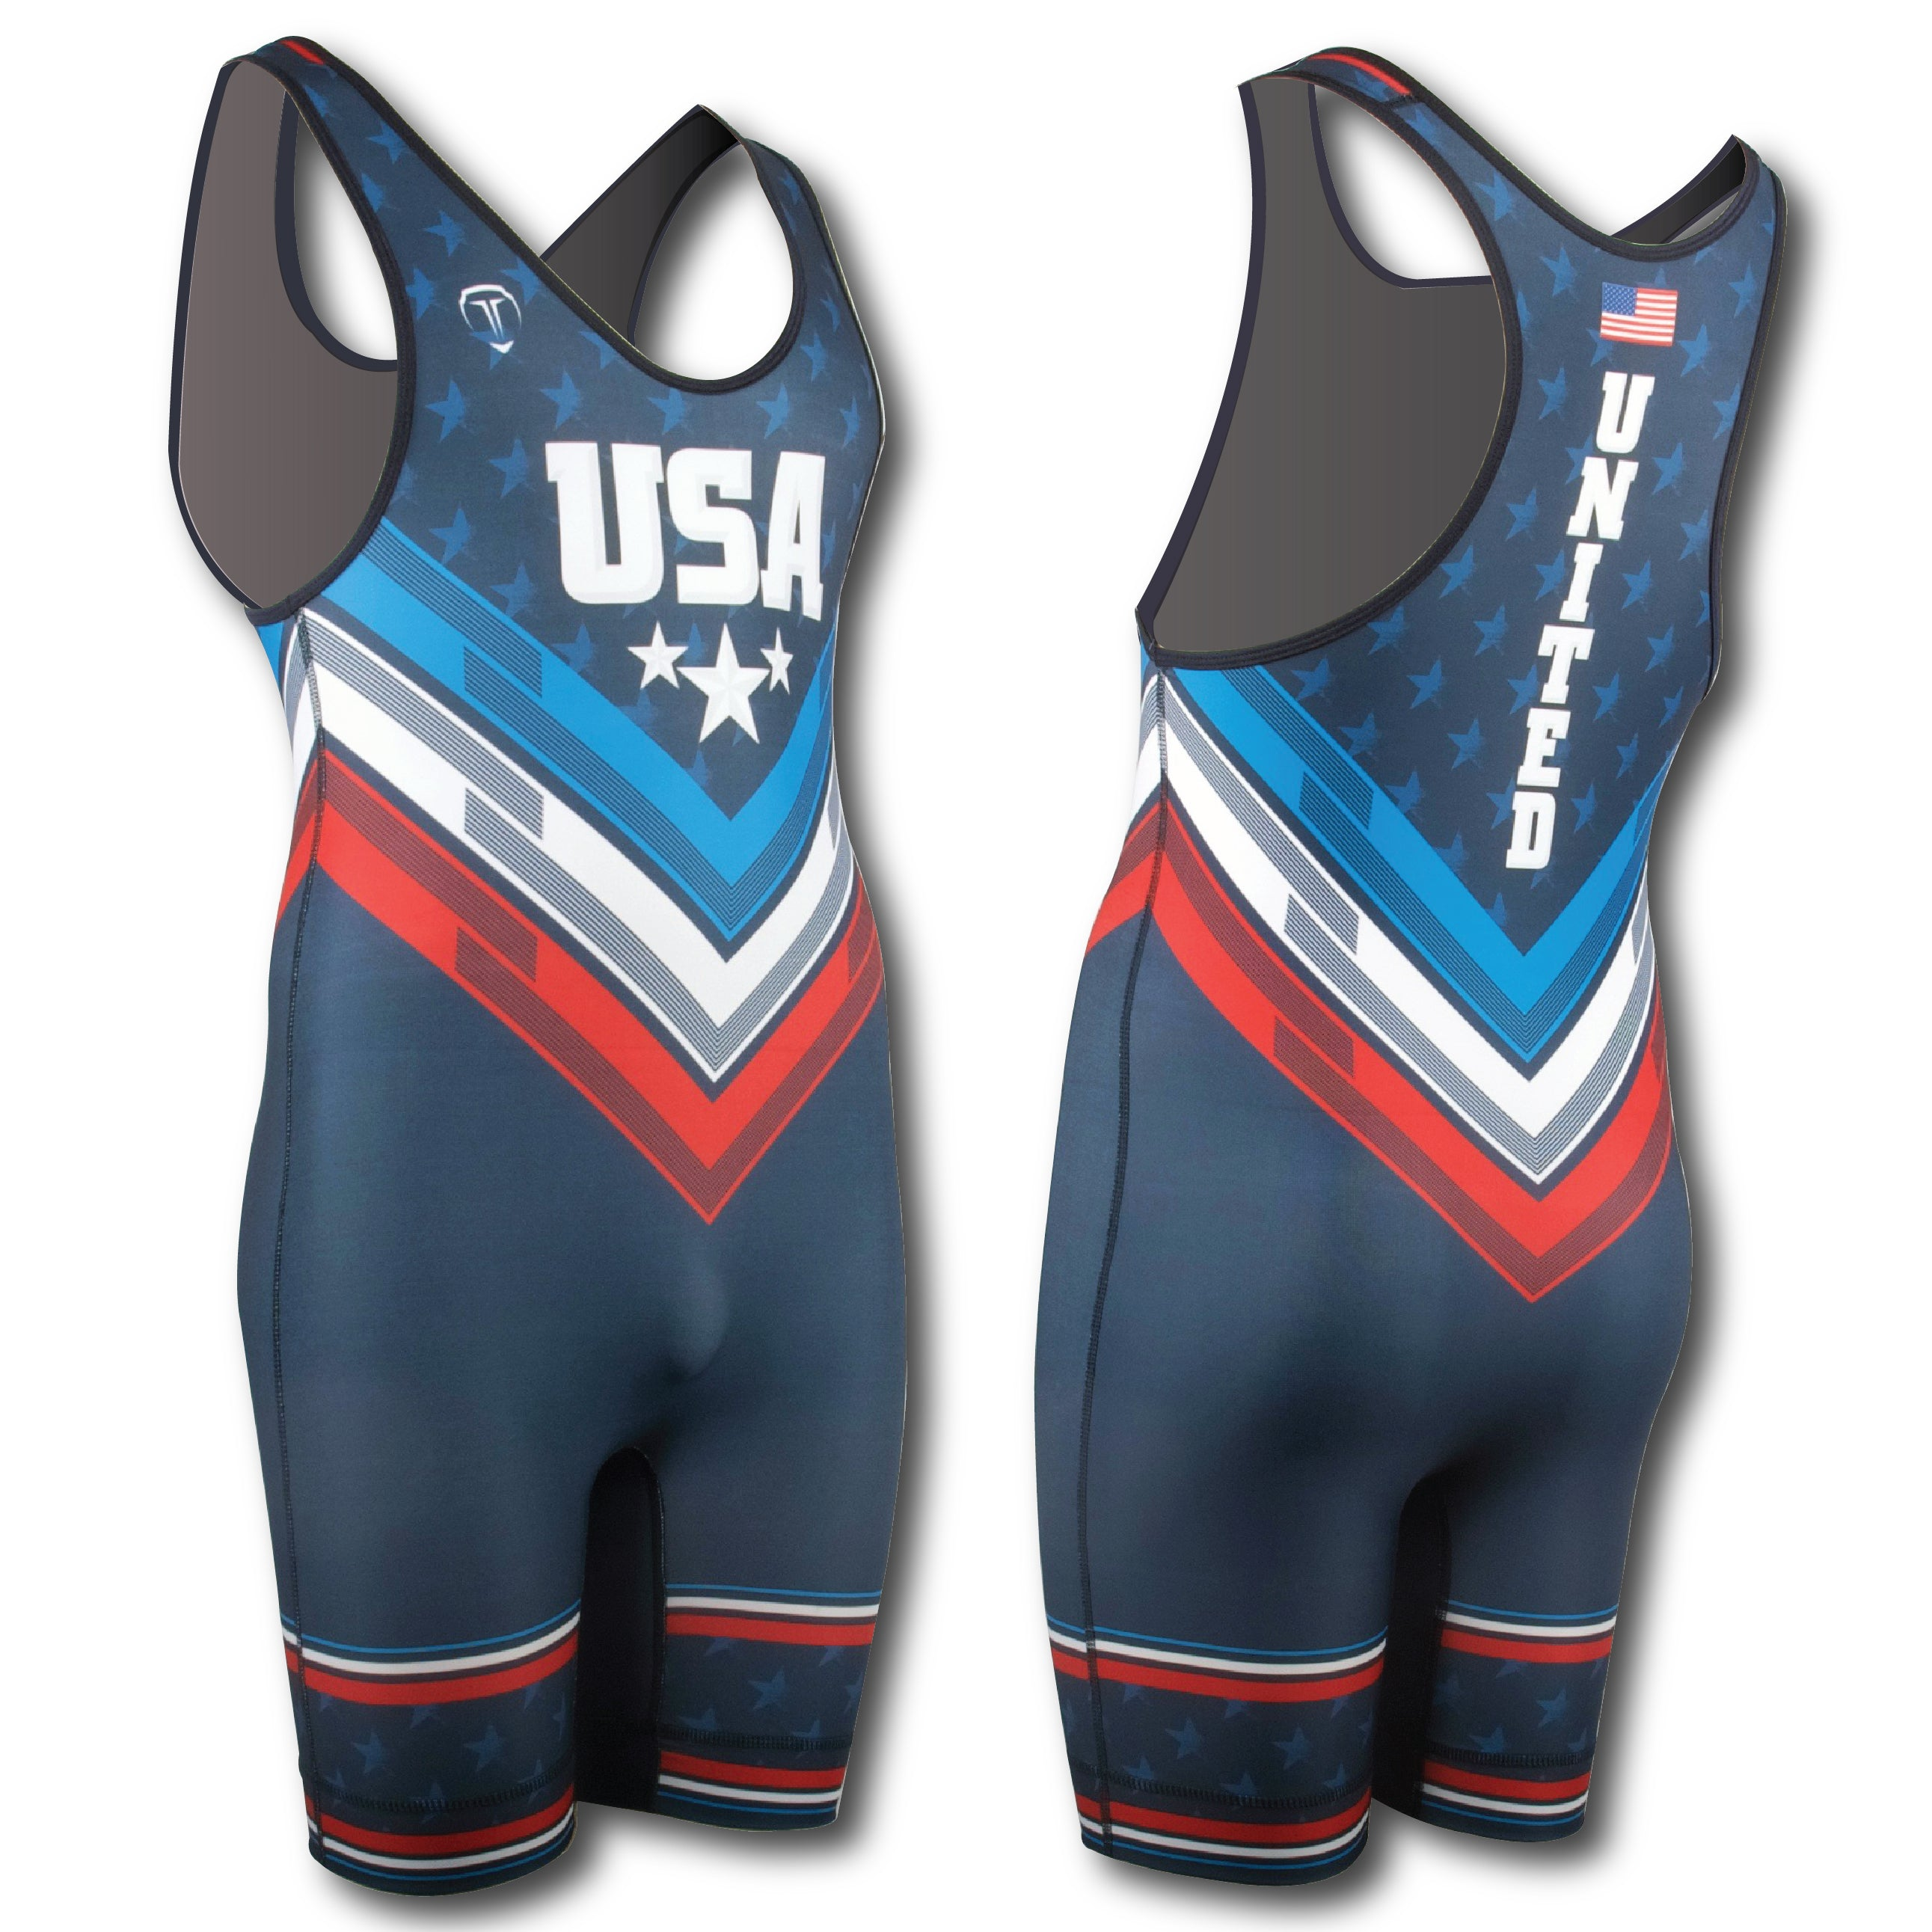 THE GWIZ WRESTLING SINGLET